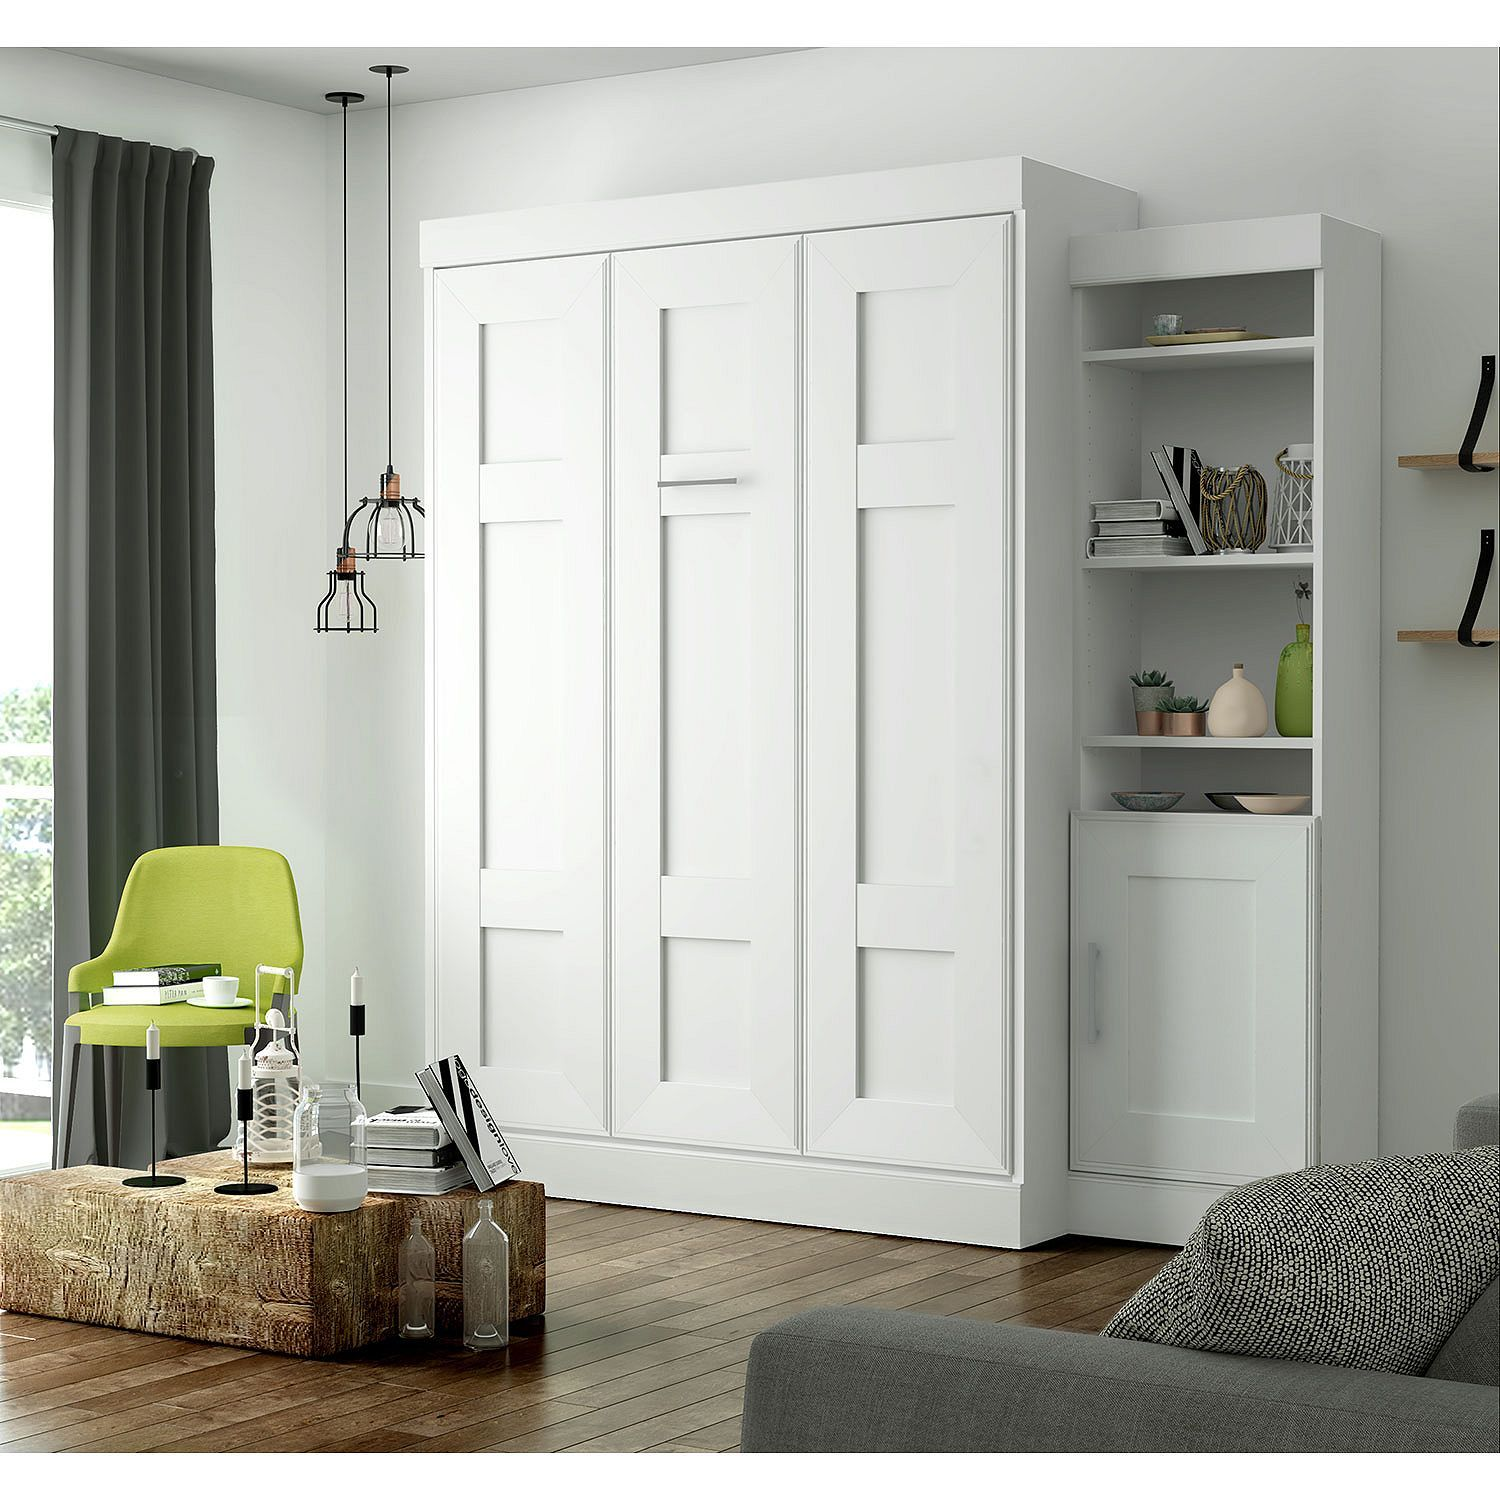 Edge by Bestar Wall Bed with One Storage Unit, White Sam